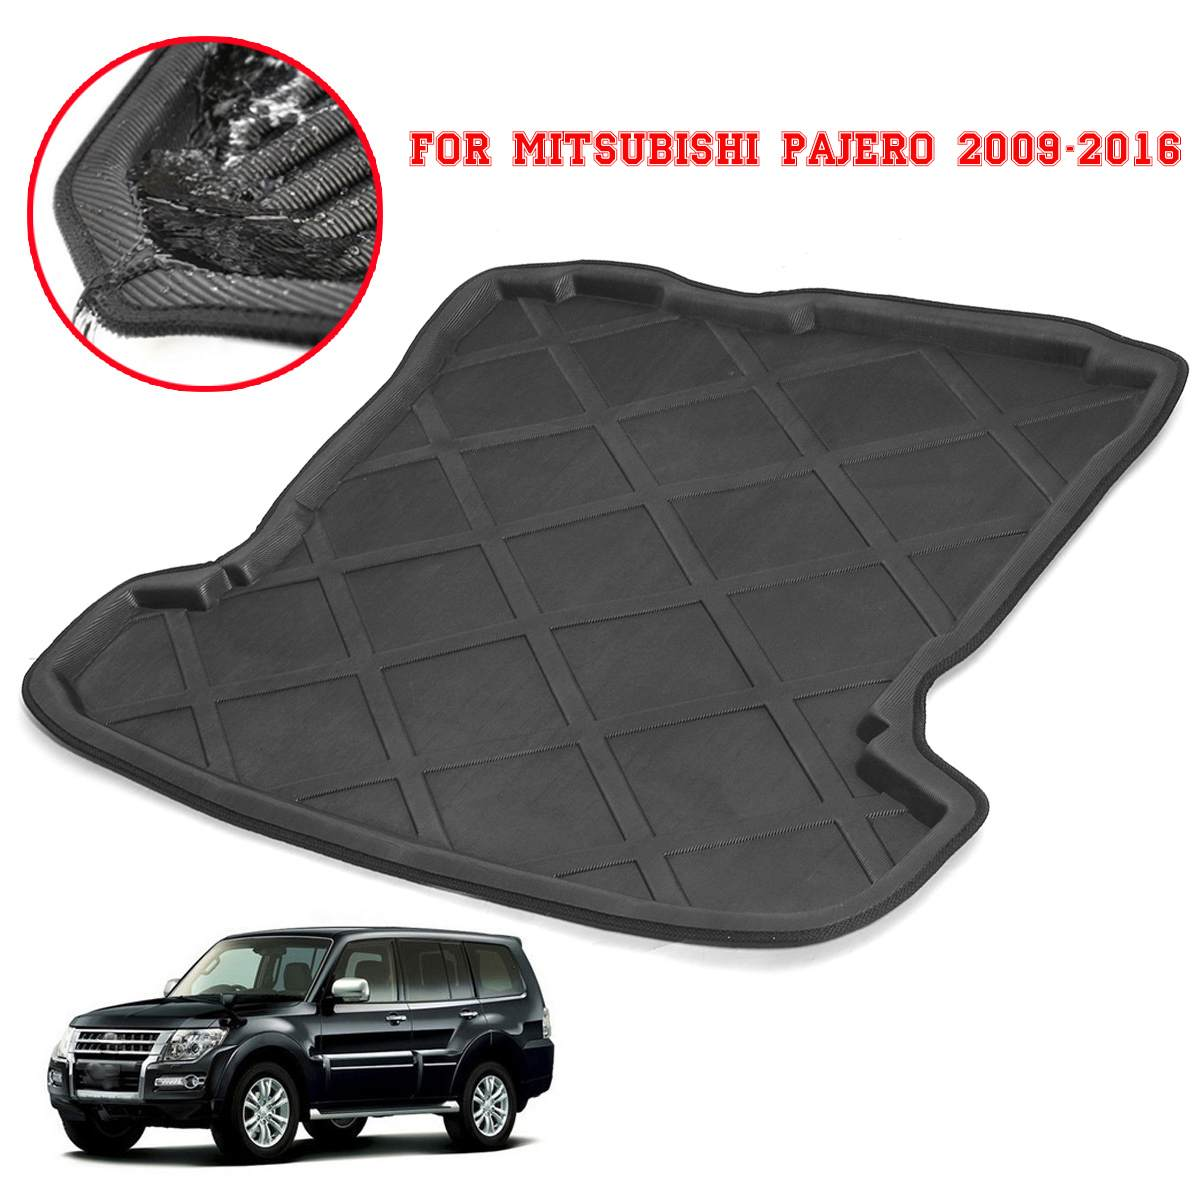 For Mitsubishi Pajero 2009-2016 Car Rear Boot Liner Trunk Cargo Mat Tray Floor Carpet Mud Pad Protector Interior Accessories